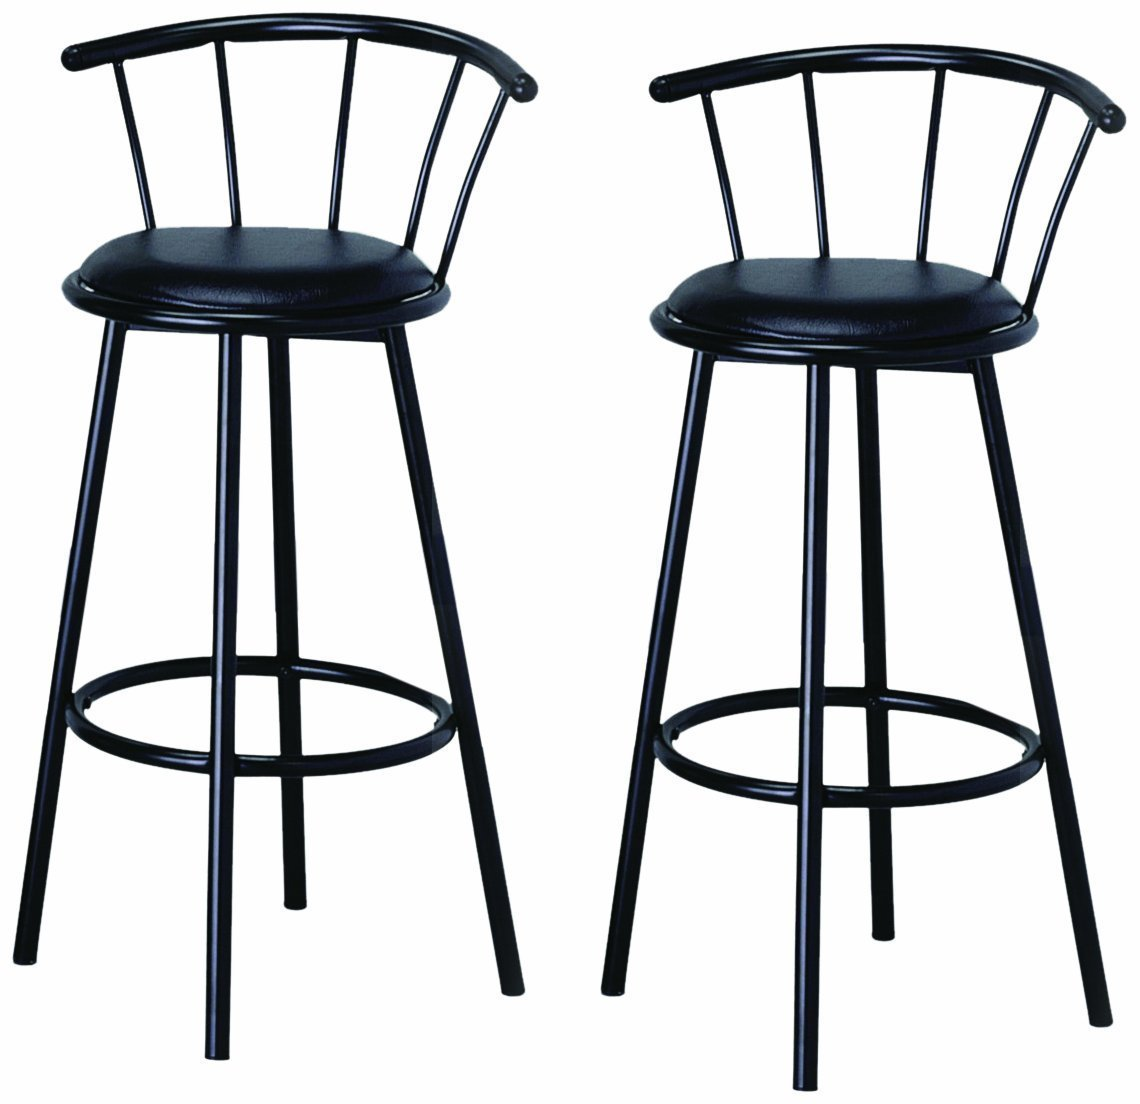 Bar Stool Chair 29 Inch Black Finish Swivel Dining Bar Stool Chairs Set